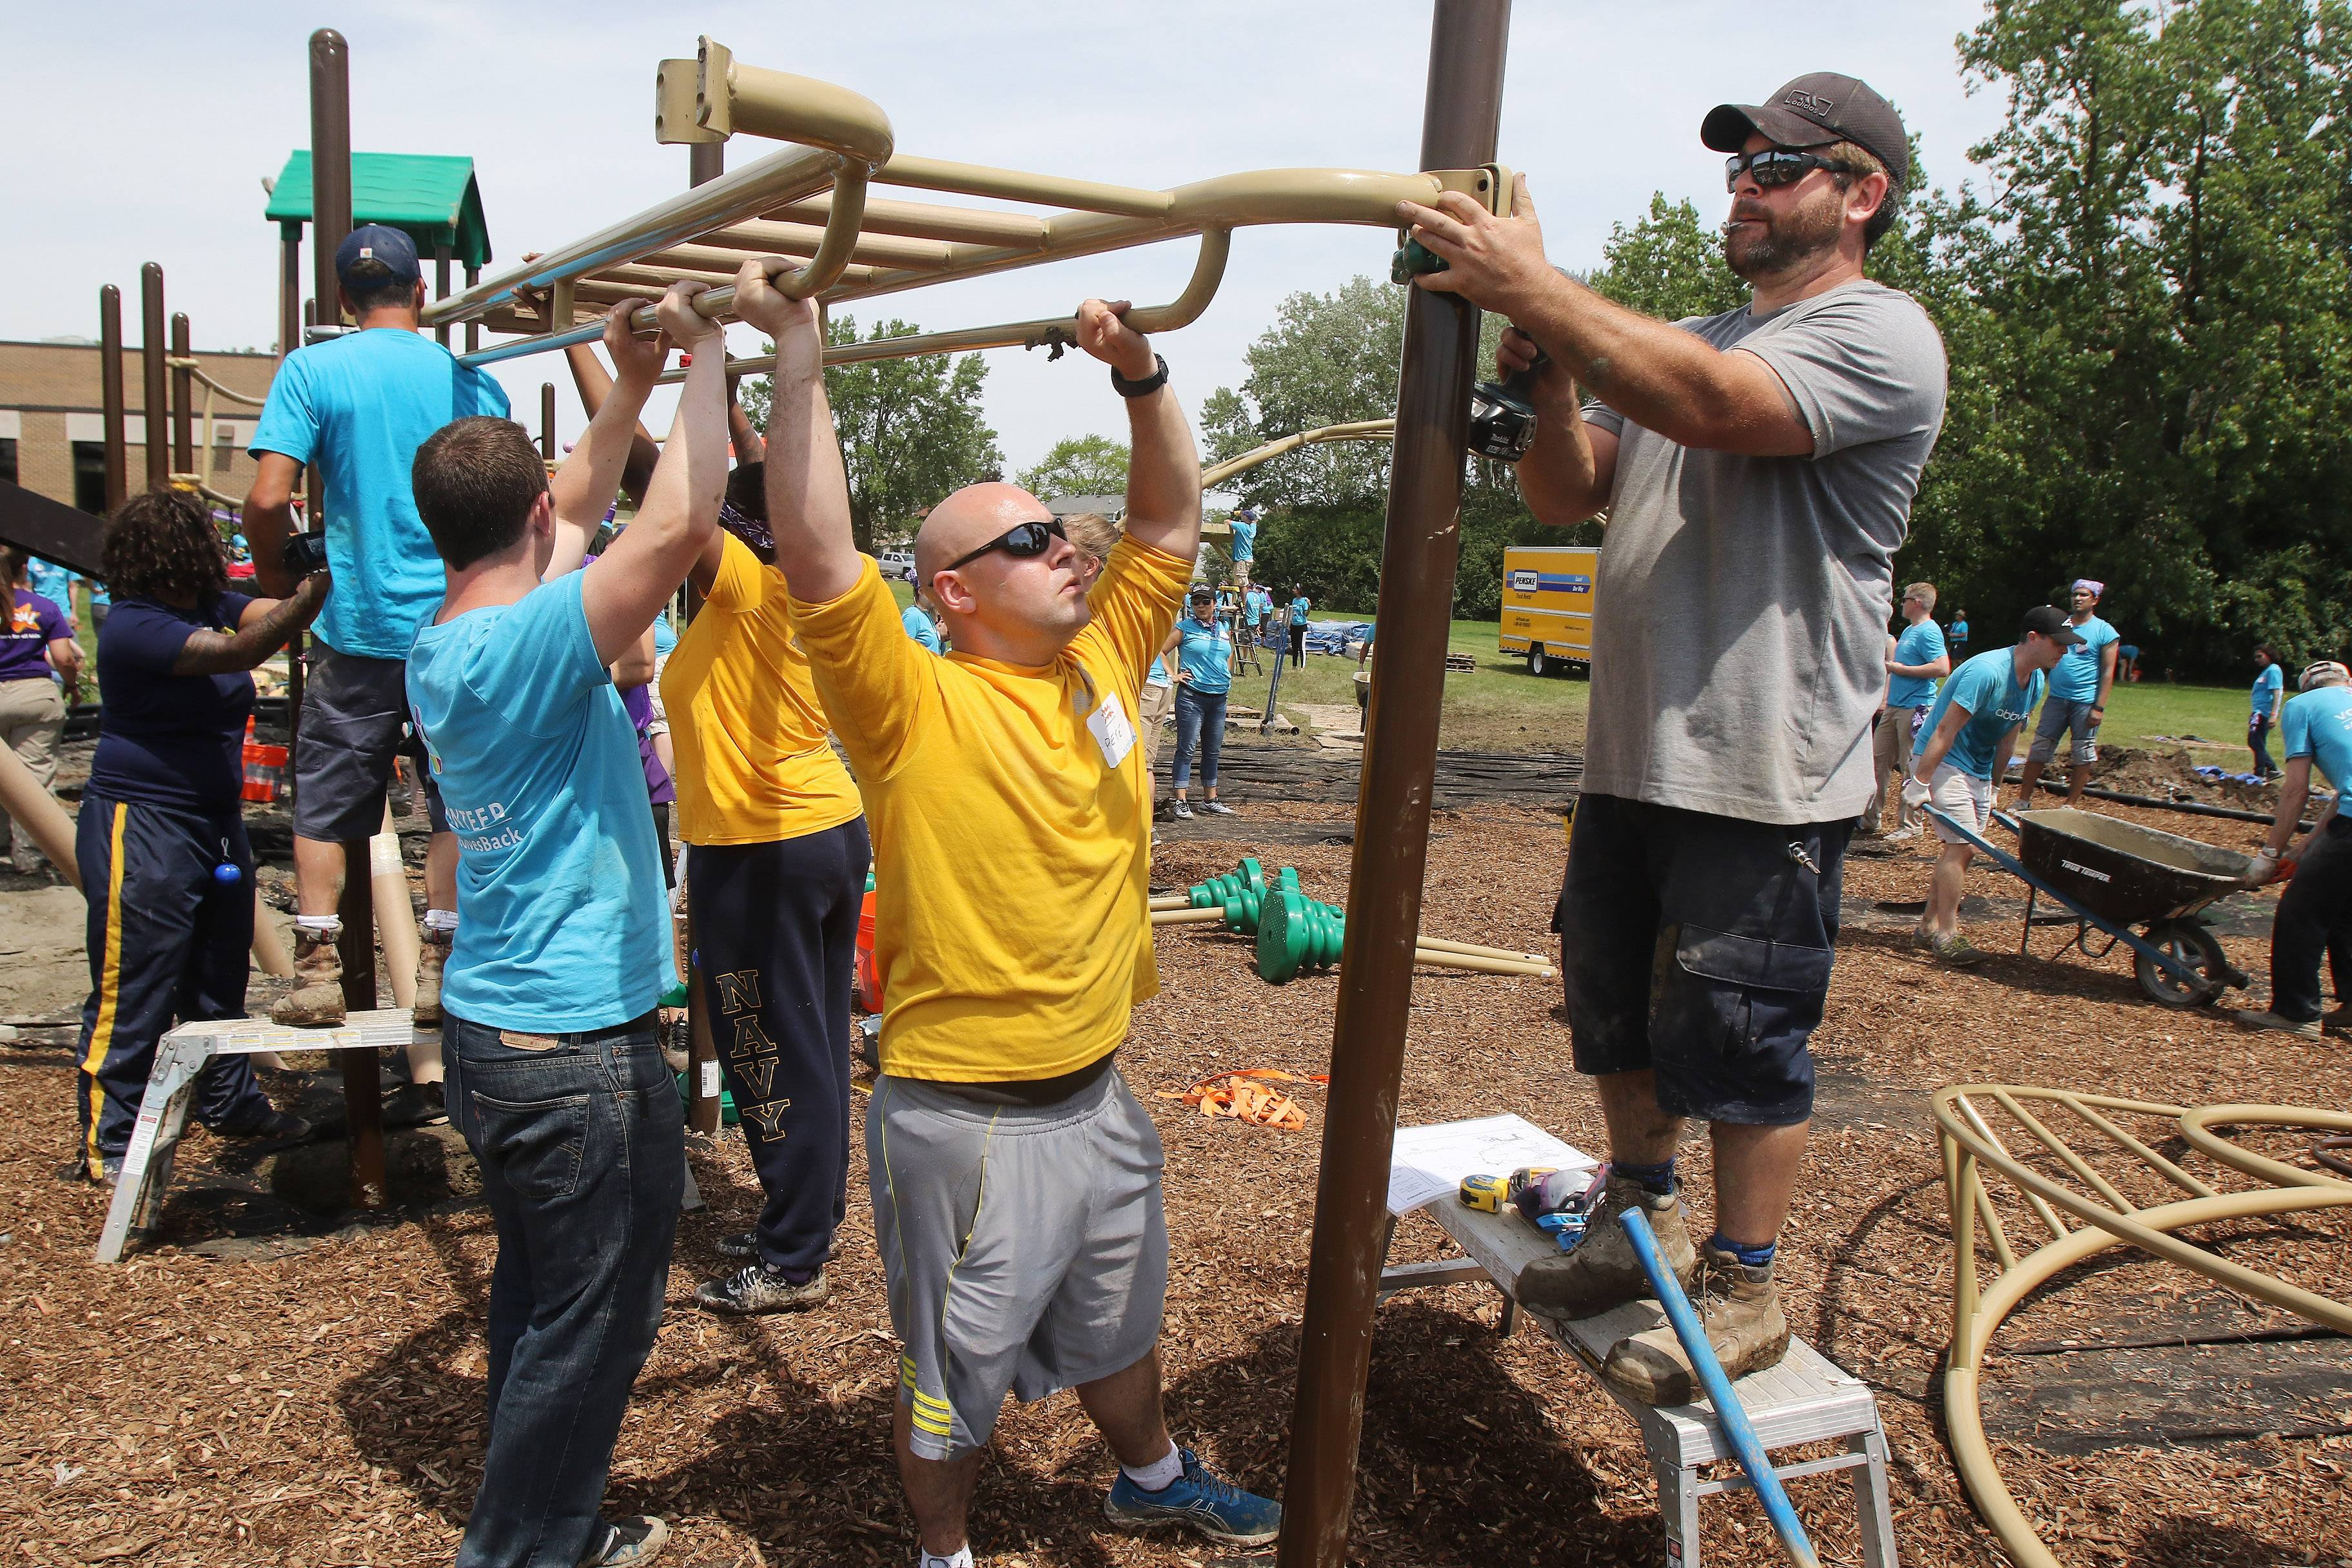 Community volunteer Pat Mazza, right, and Petty Ofc. Pete Peterson join other volunteers to attach monkey bars for a new playground Thursday at A.J. Katzenmaier Academy in North Chicago. Employees from AbbVie, sailors from Naval Station Great Lakes and local community members joined KaBOOM! to work on the project.